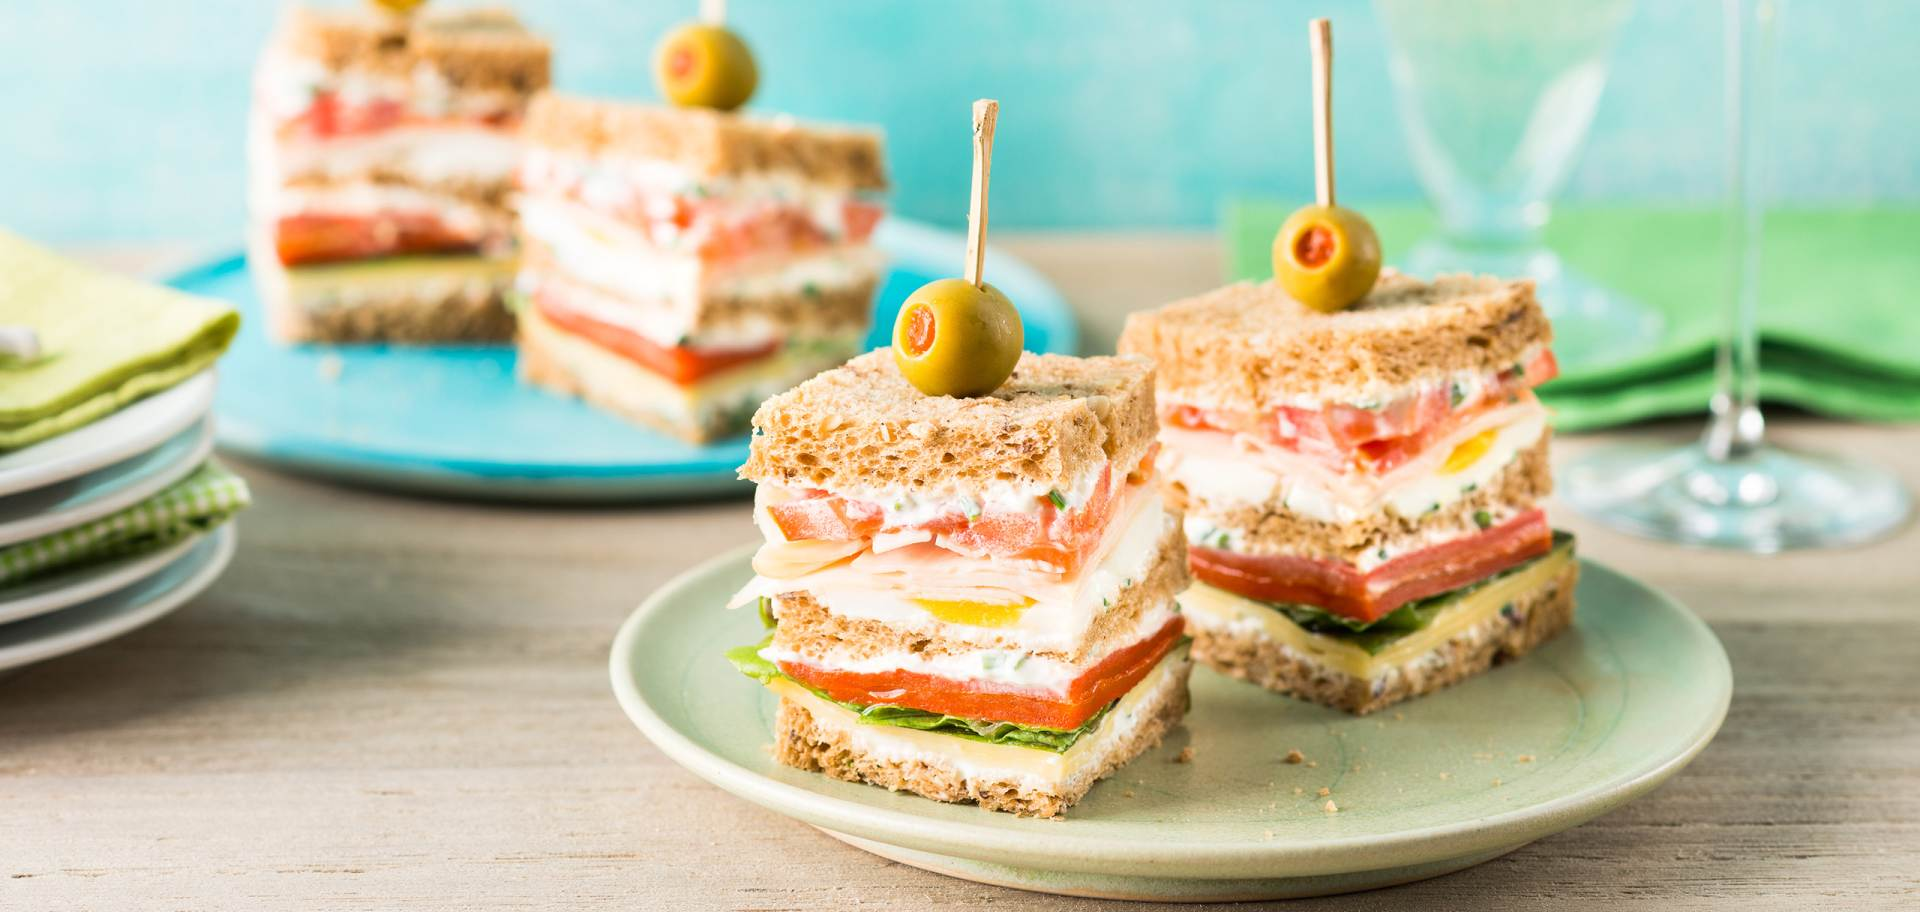 sandwich toast ideen da71 messianica. Black Bedroom Furniture Sets. Home Design Ideas